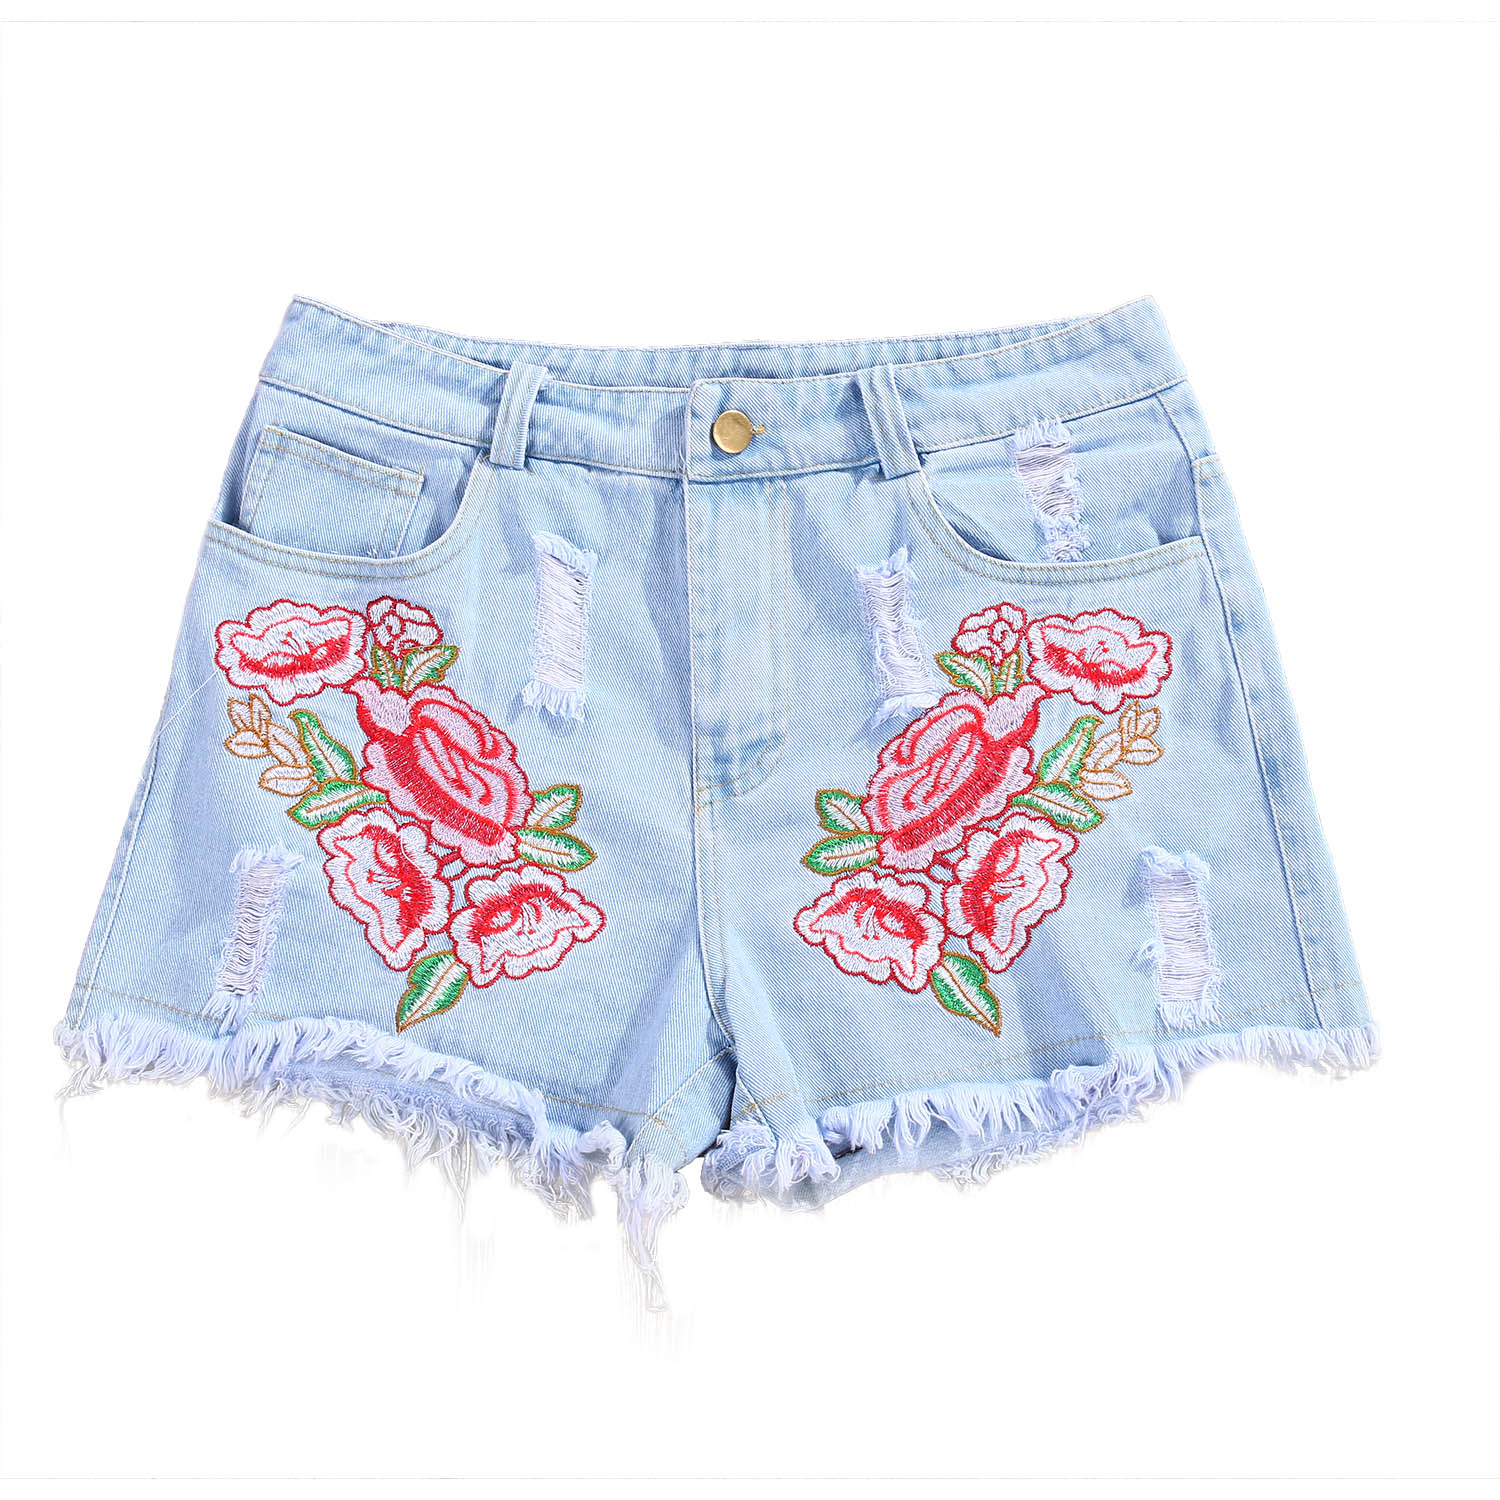 Women High Waisted Denim Shorts Short Jeans Hot Flower New Fashion Women Ladies Shorts Summer Washed